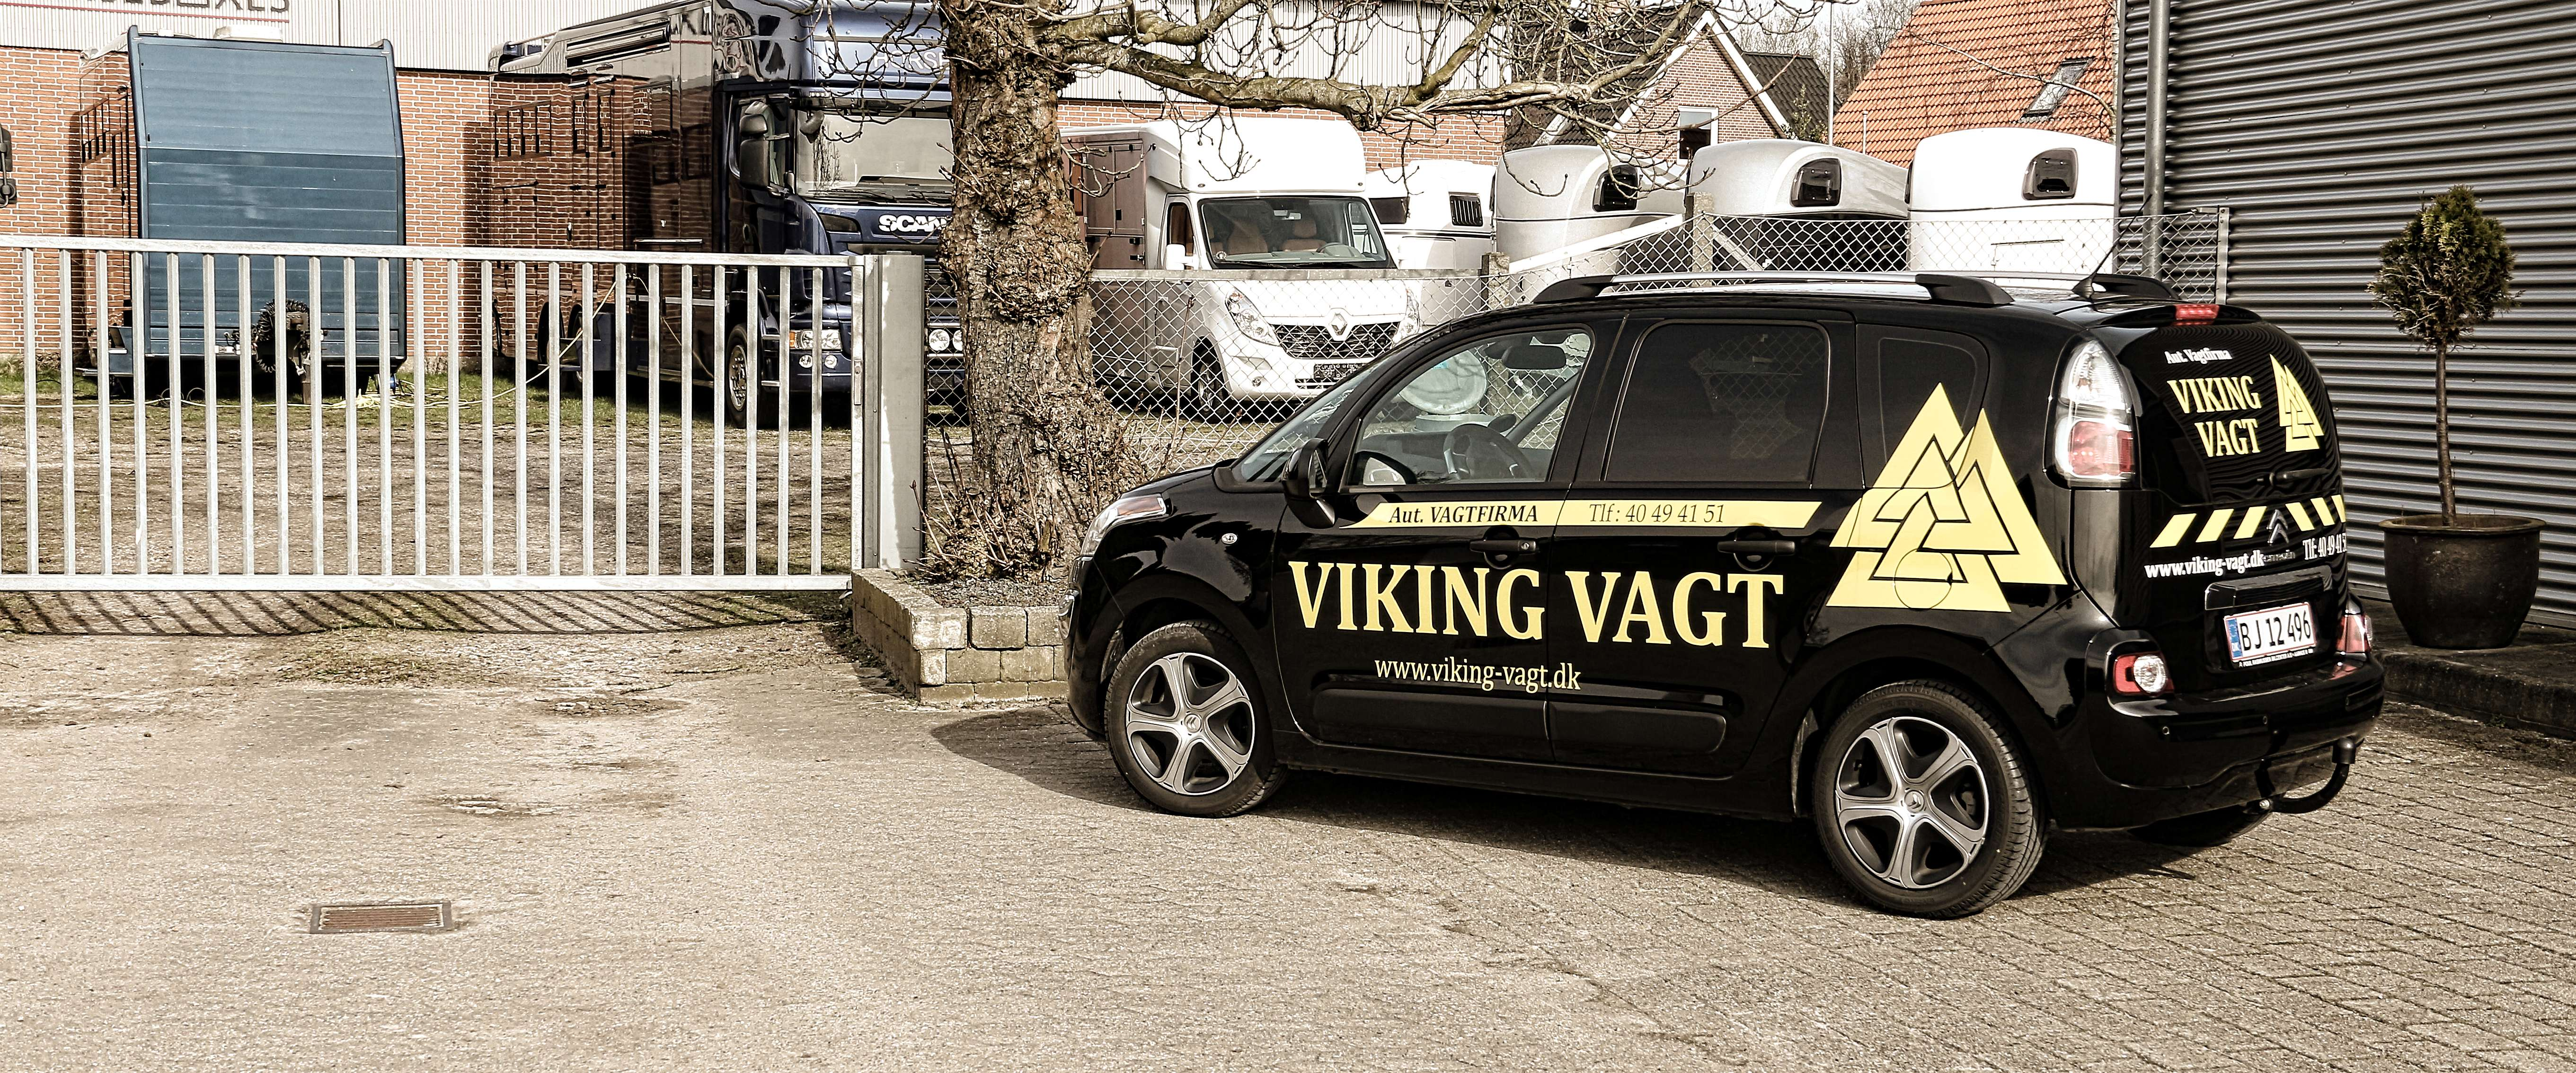 Viking-vagt-firma-3 copy.jpg